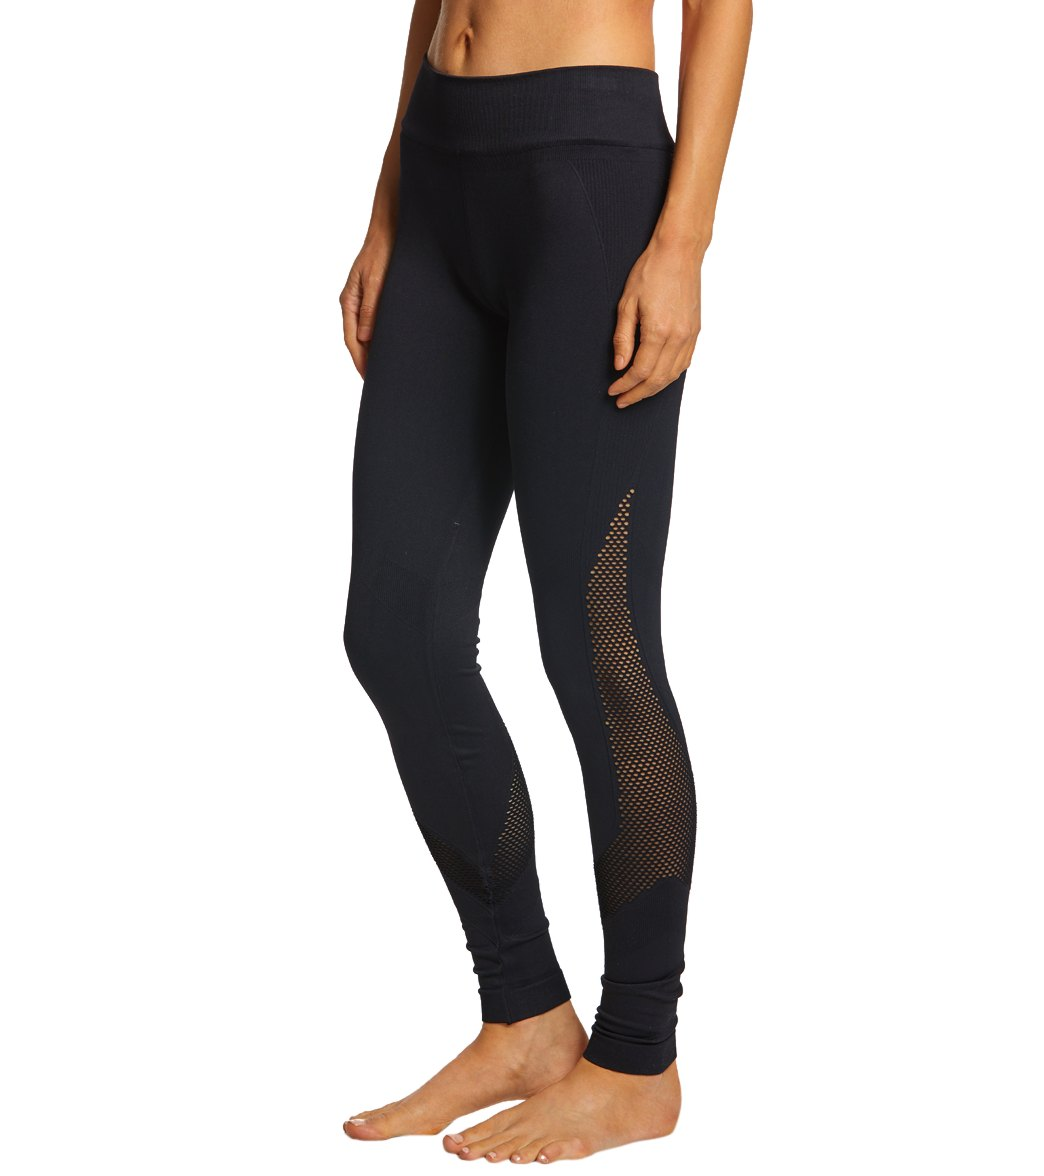 dc8924ef2acd0d NUX Network Seamless Yoga Leggings